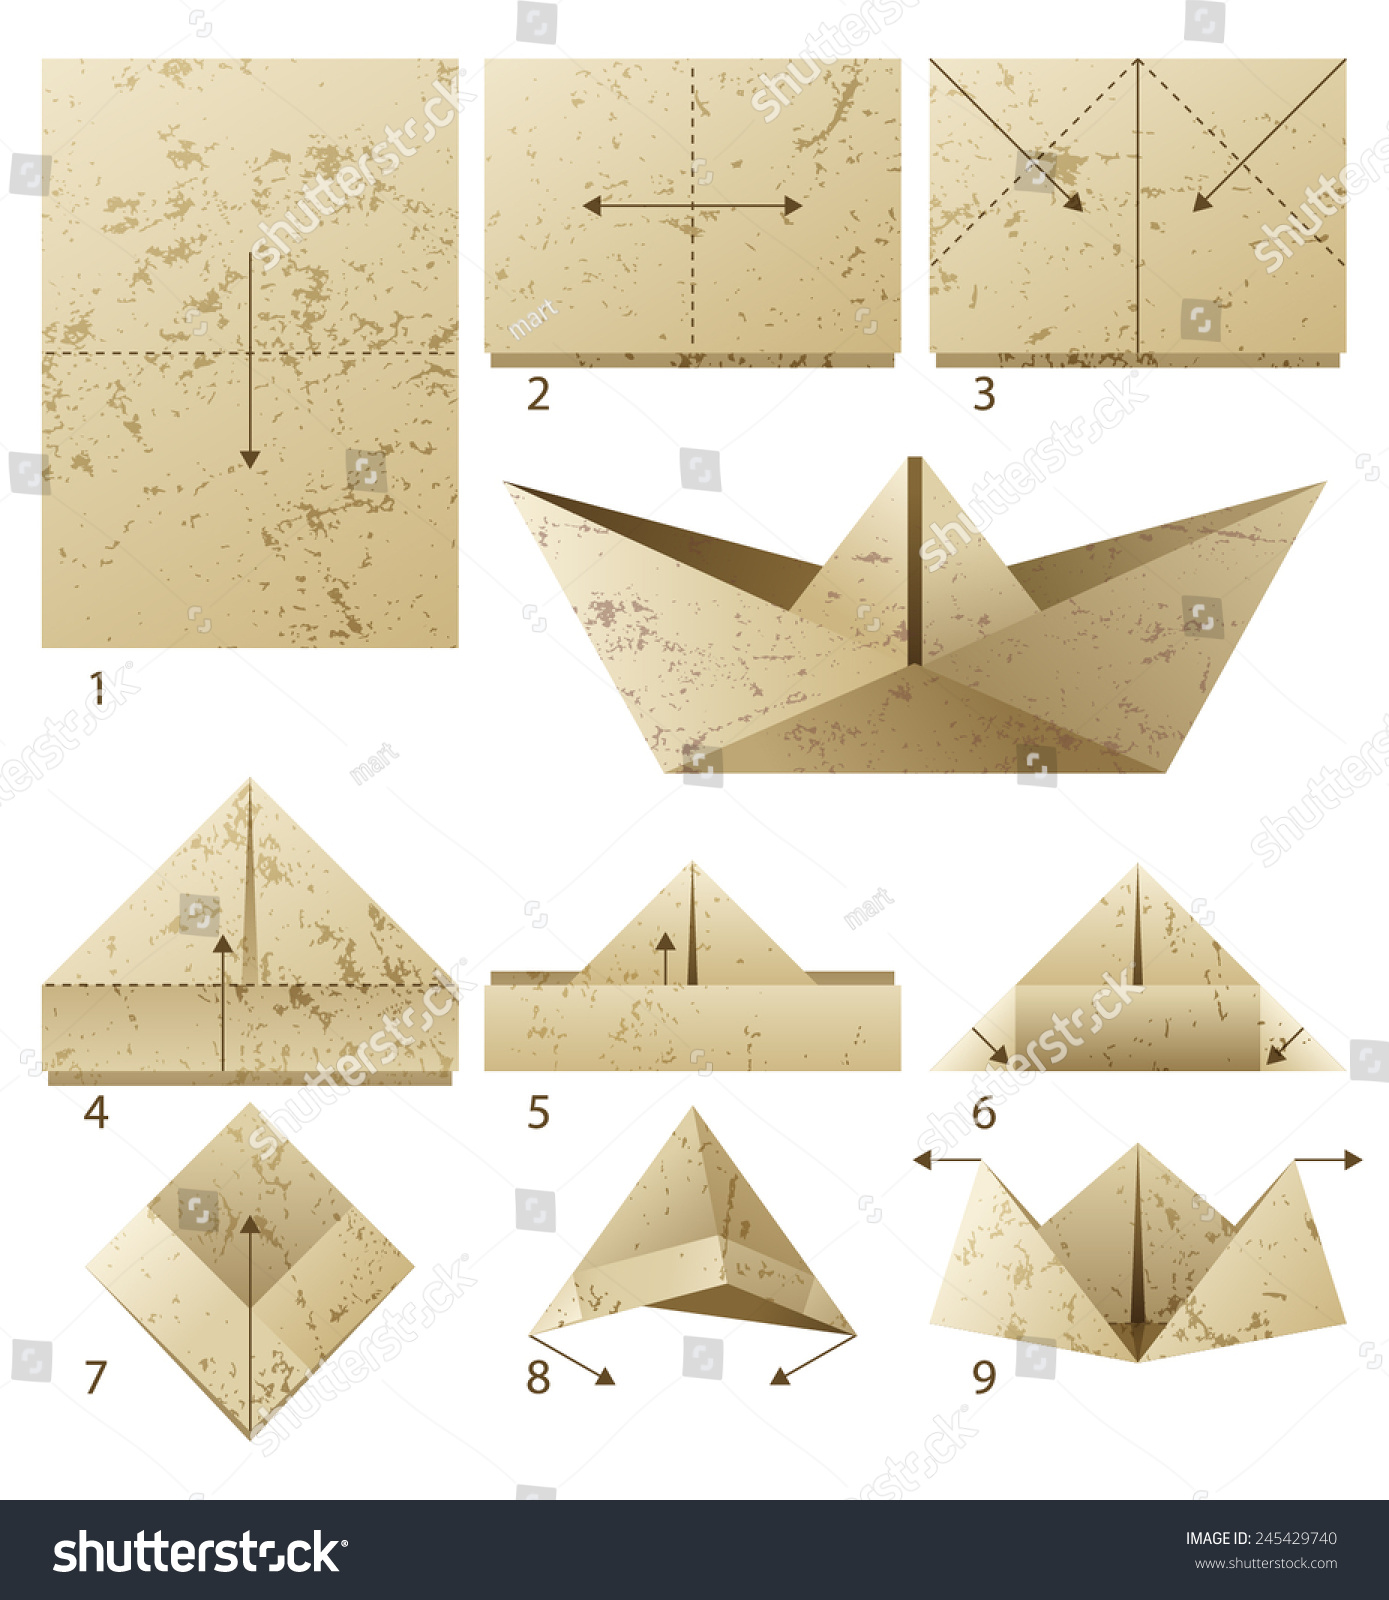 how to make a paper boat steps - Google Search | Make a paper boat ... | 1600x1389